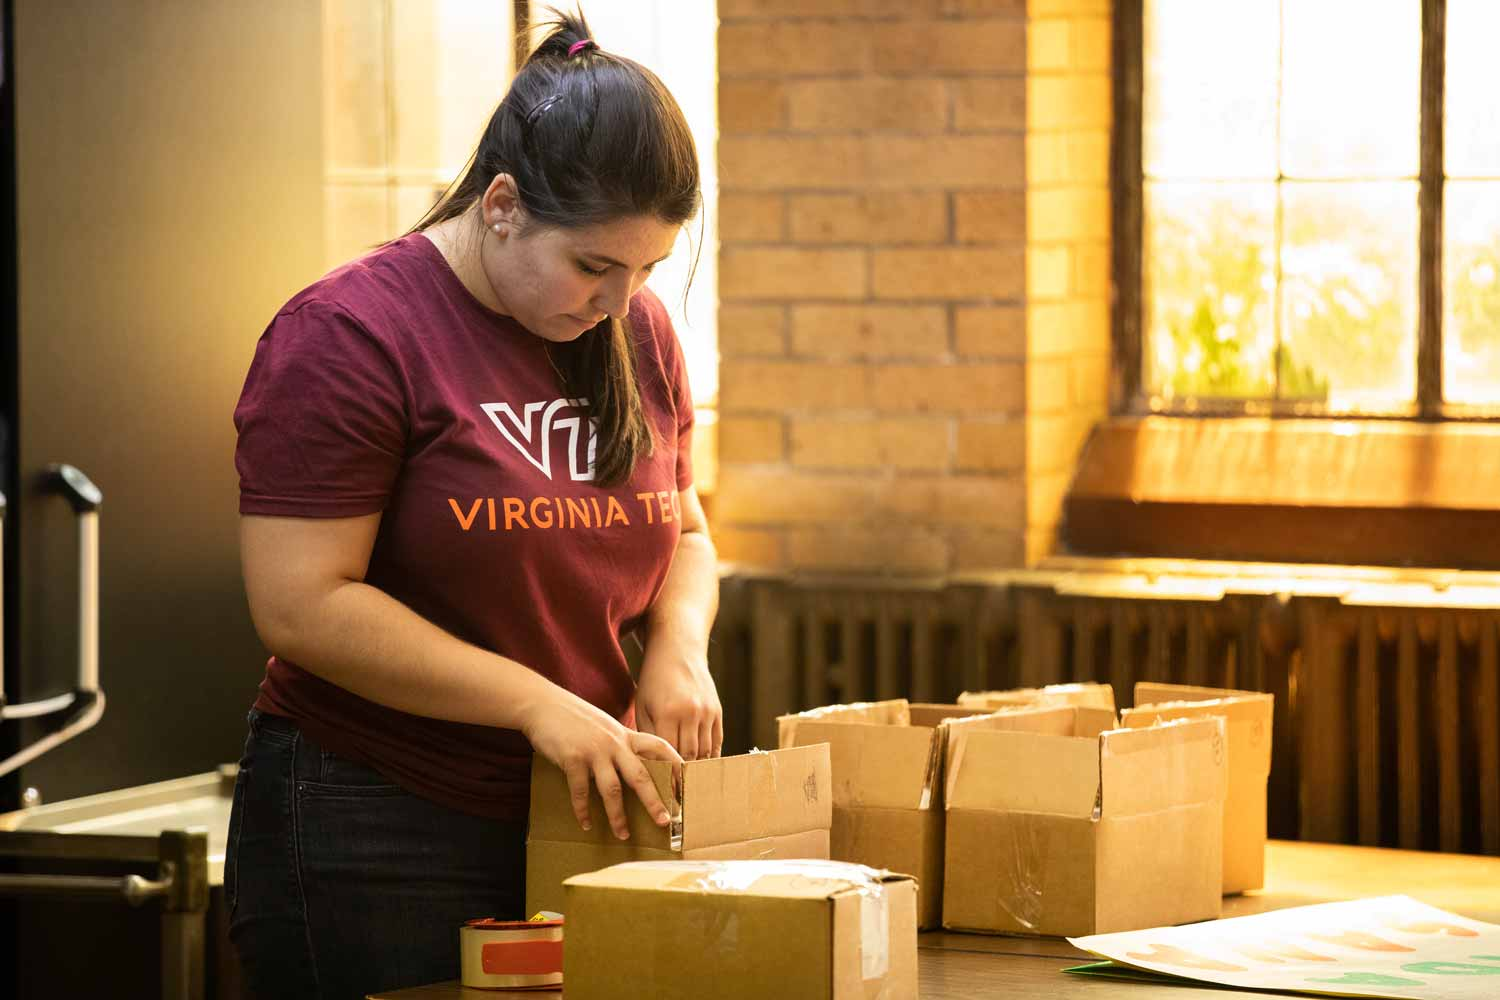 A Virginia Tech grad student prepares water sample kits in the basement of a church.